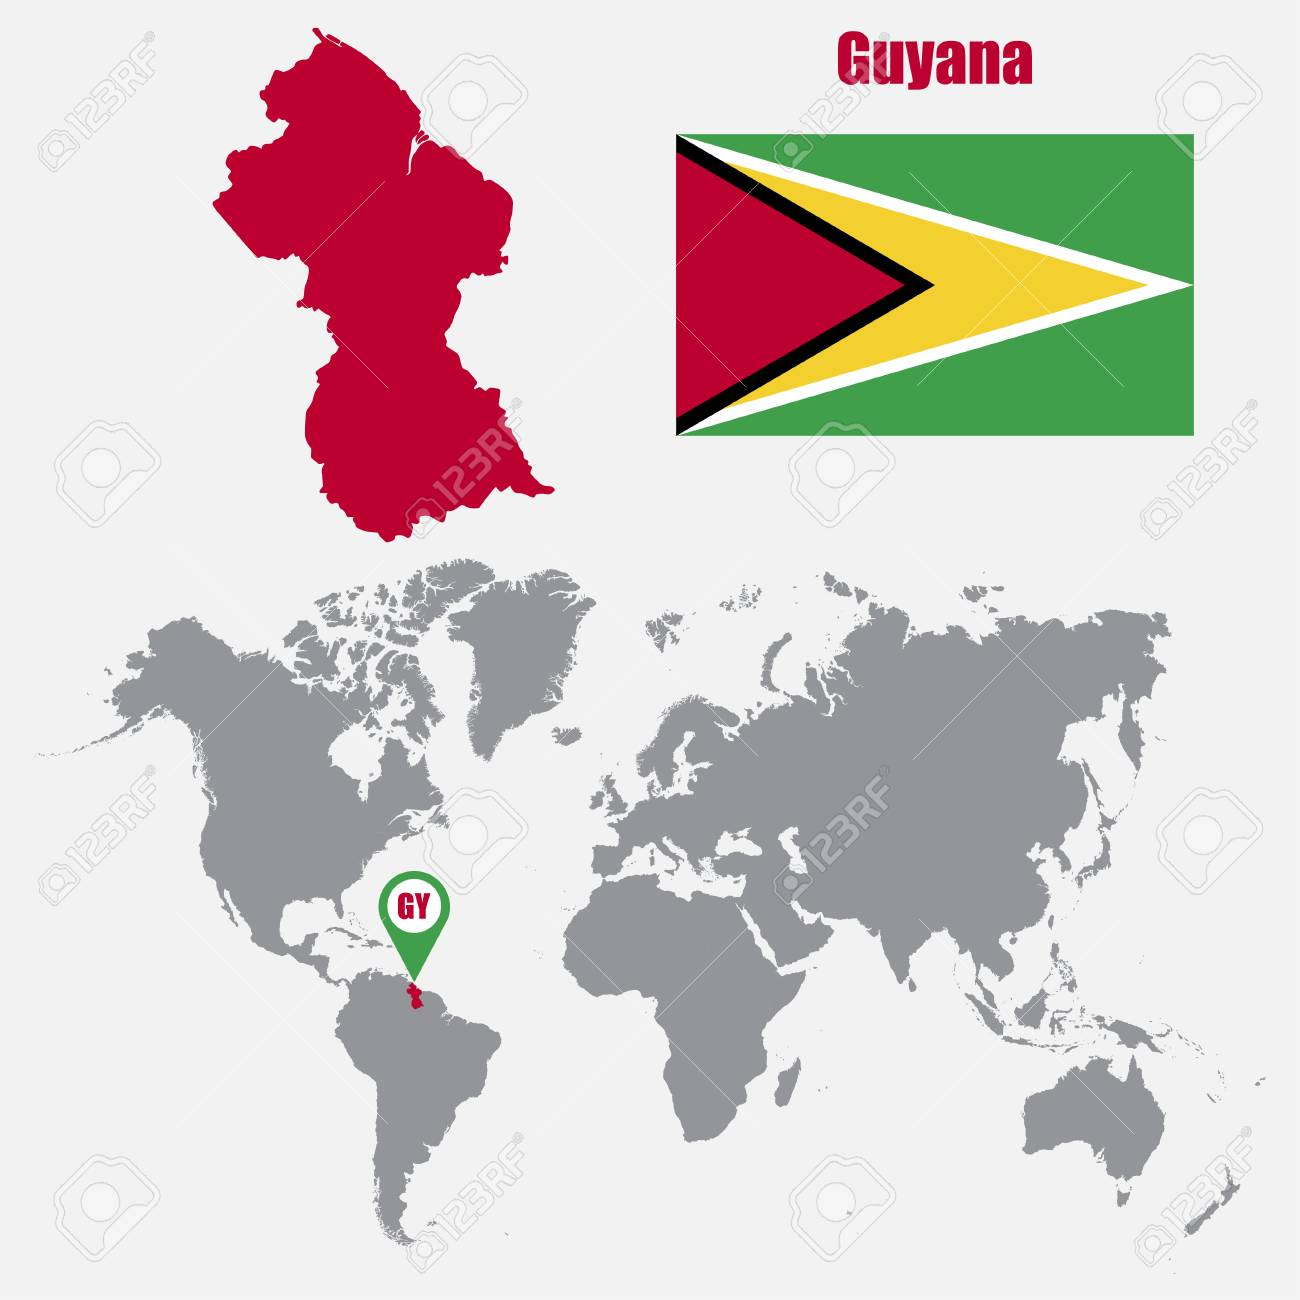 Guyana Map World Guyana Map On A World Map With Flag And Map Pointer. Vector